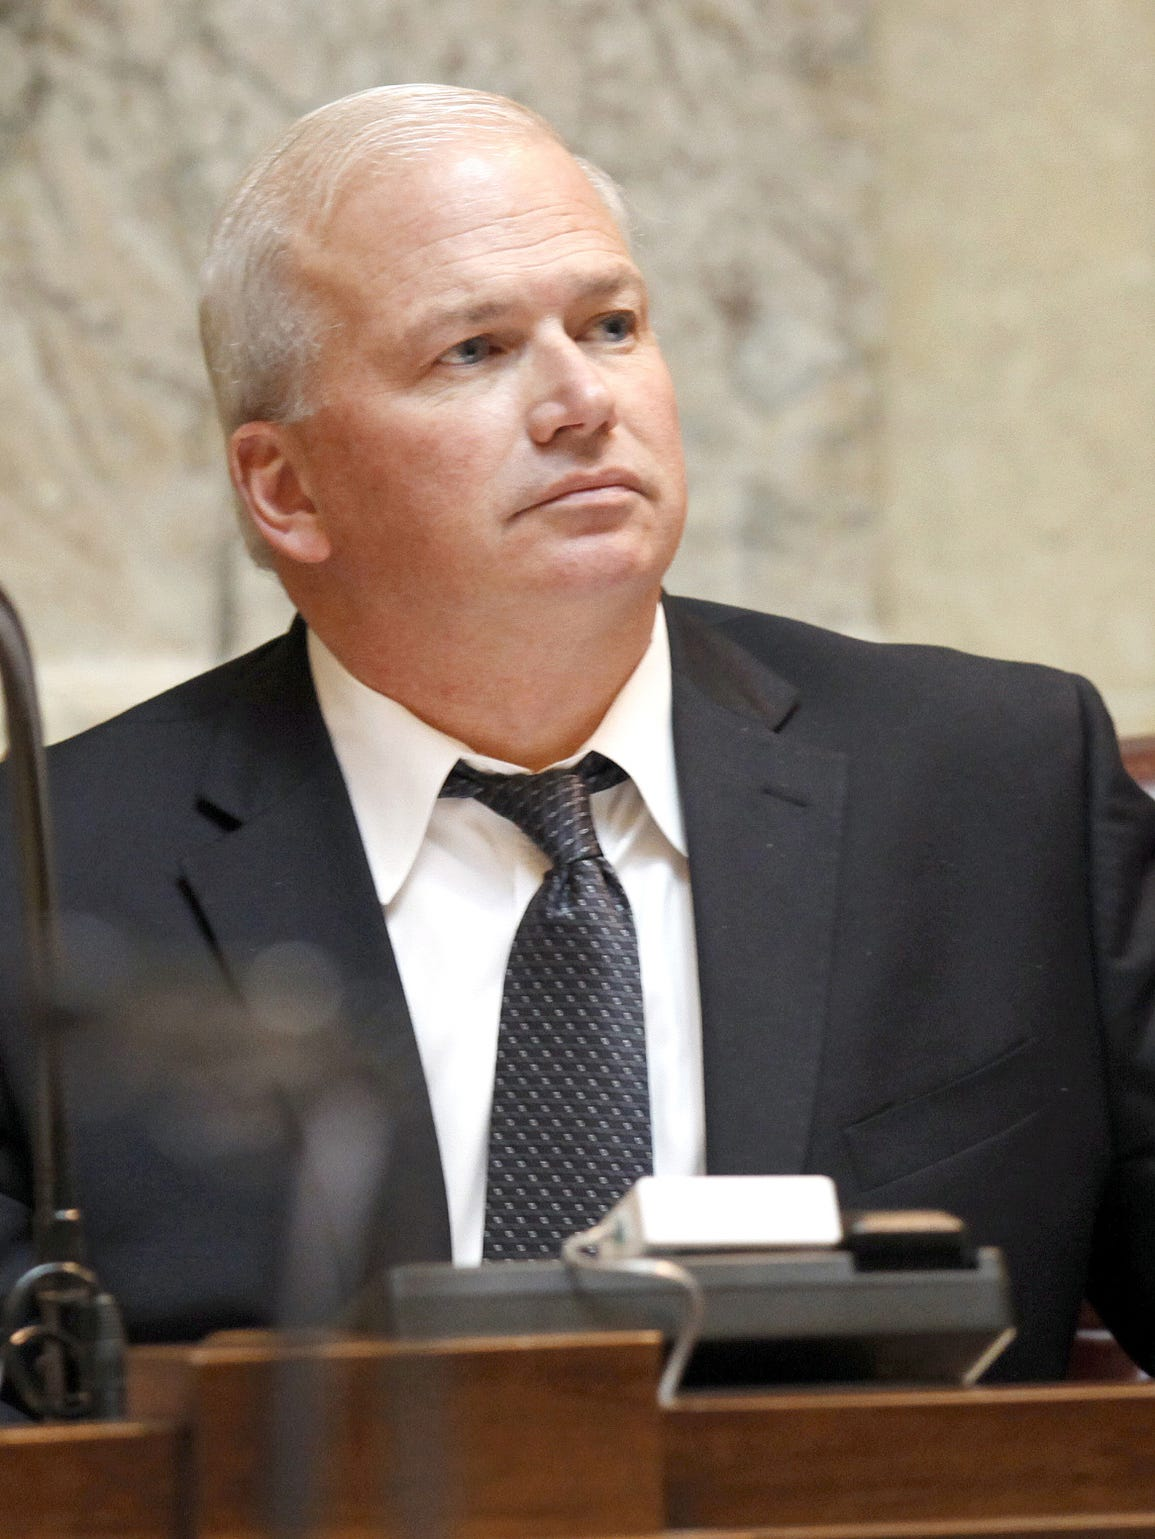 State Sen. Scott Fitzgerald, R-Juneau, defends the